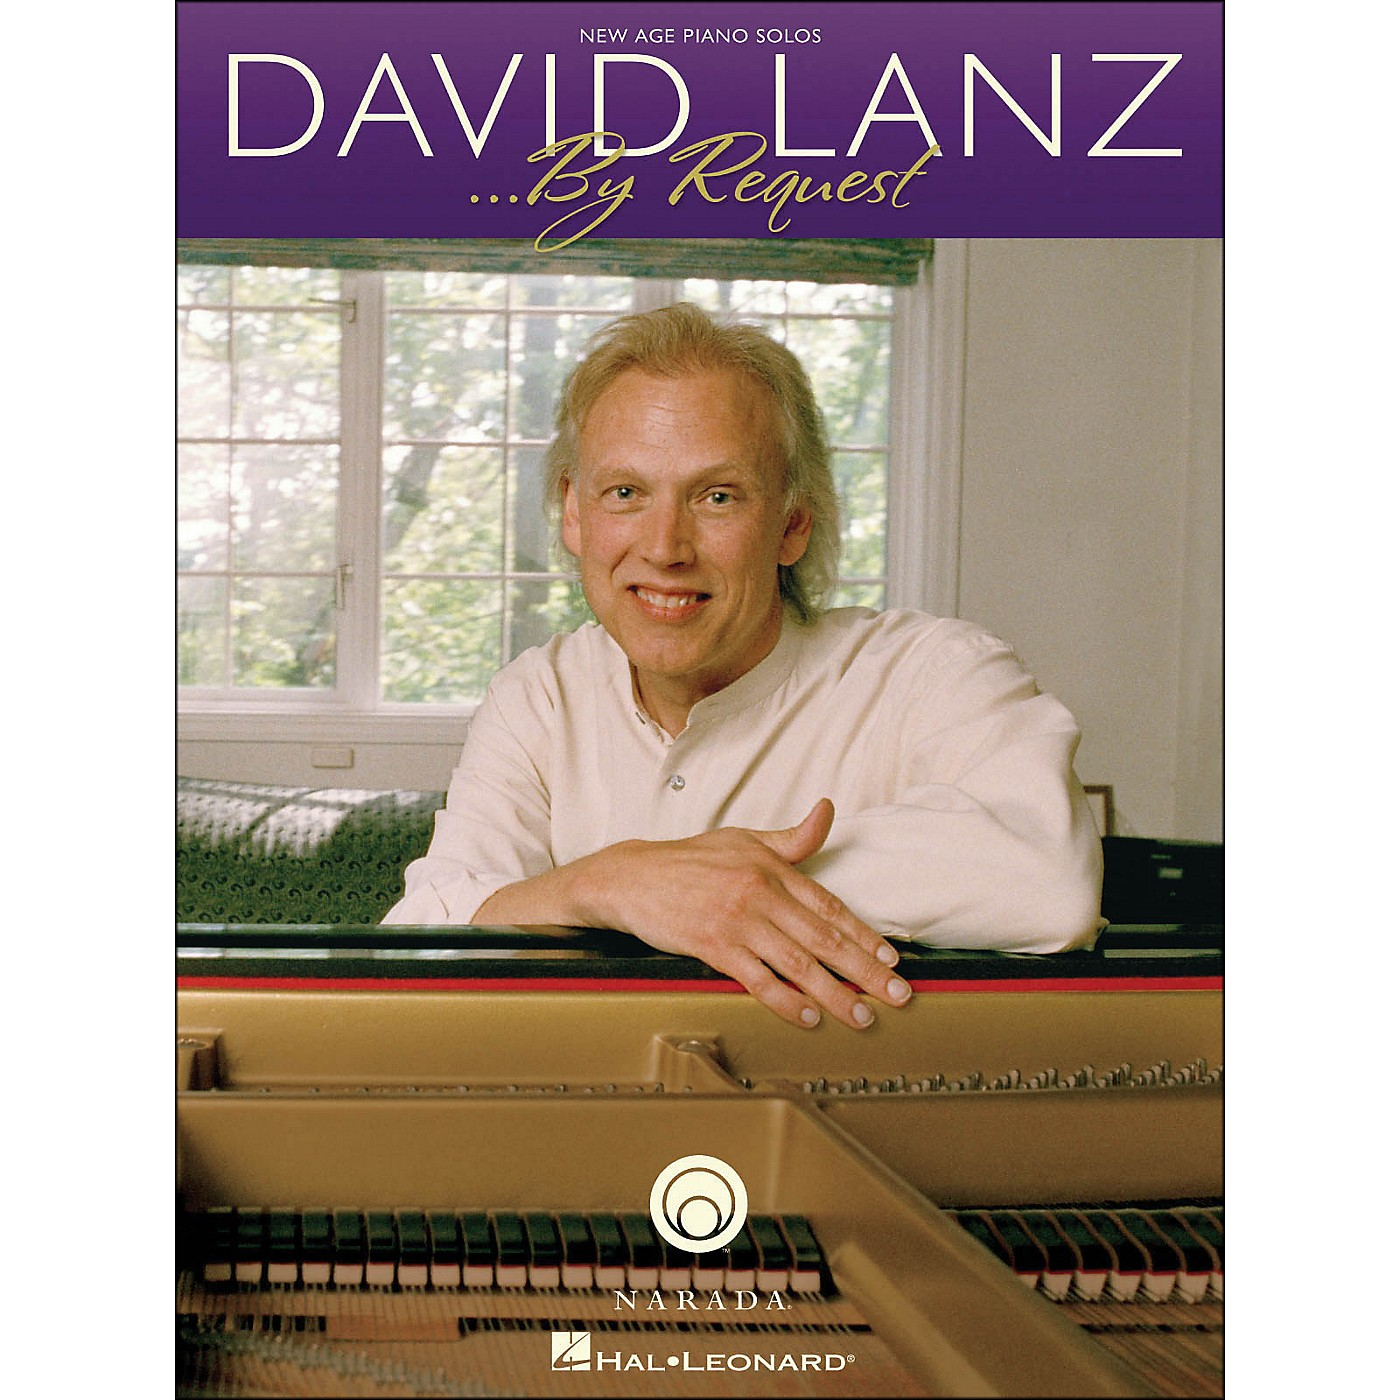 Hal Leonard David Lanz - By Request arranged for piano solo thumbnail